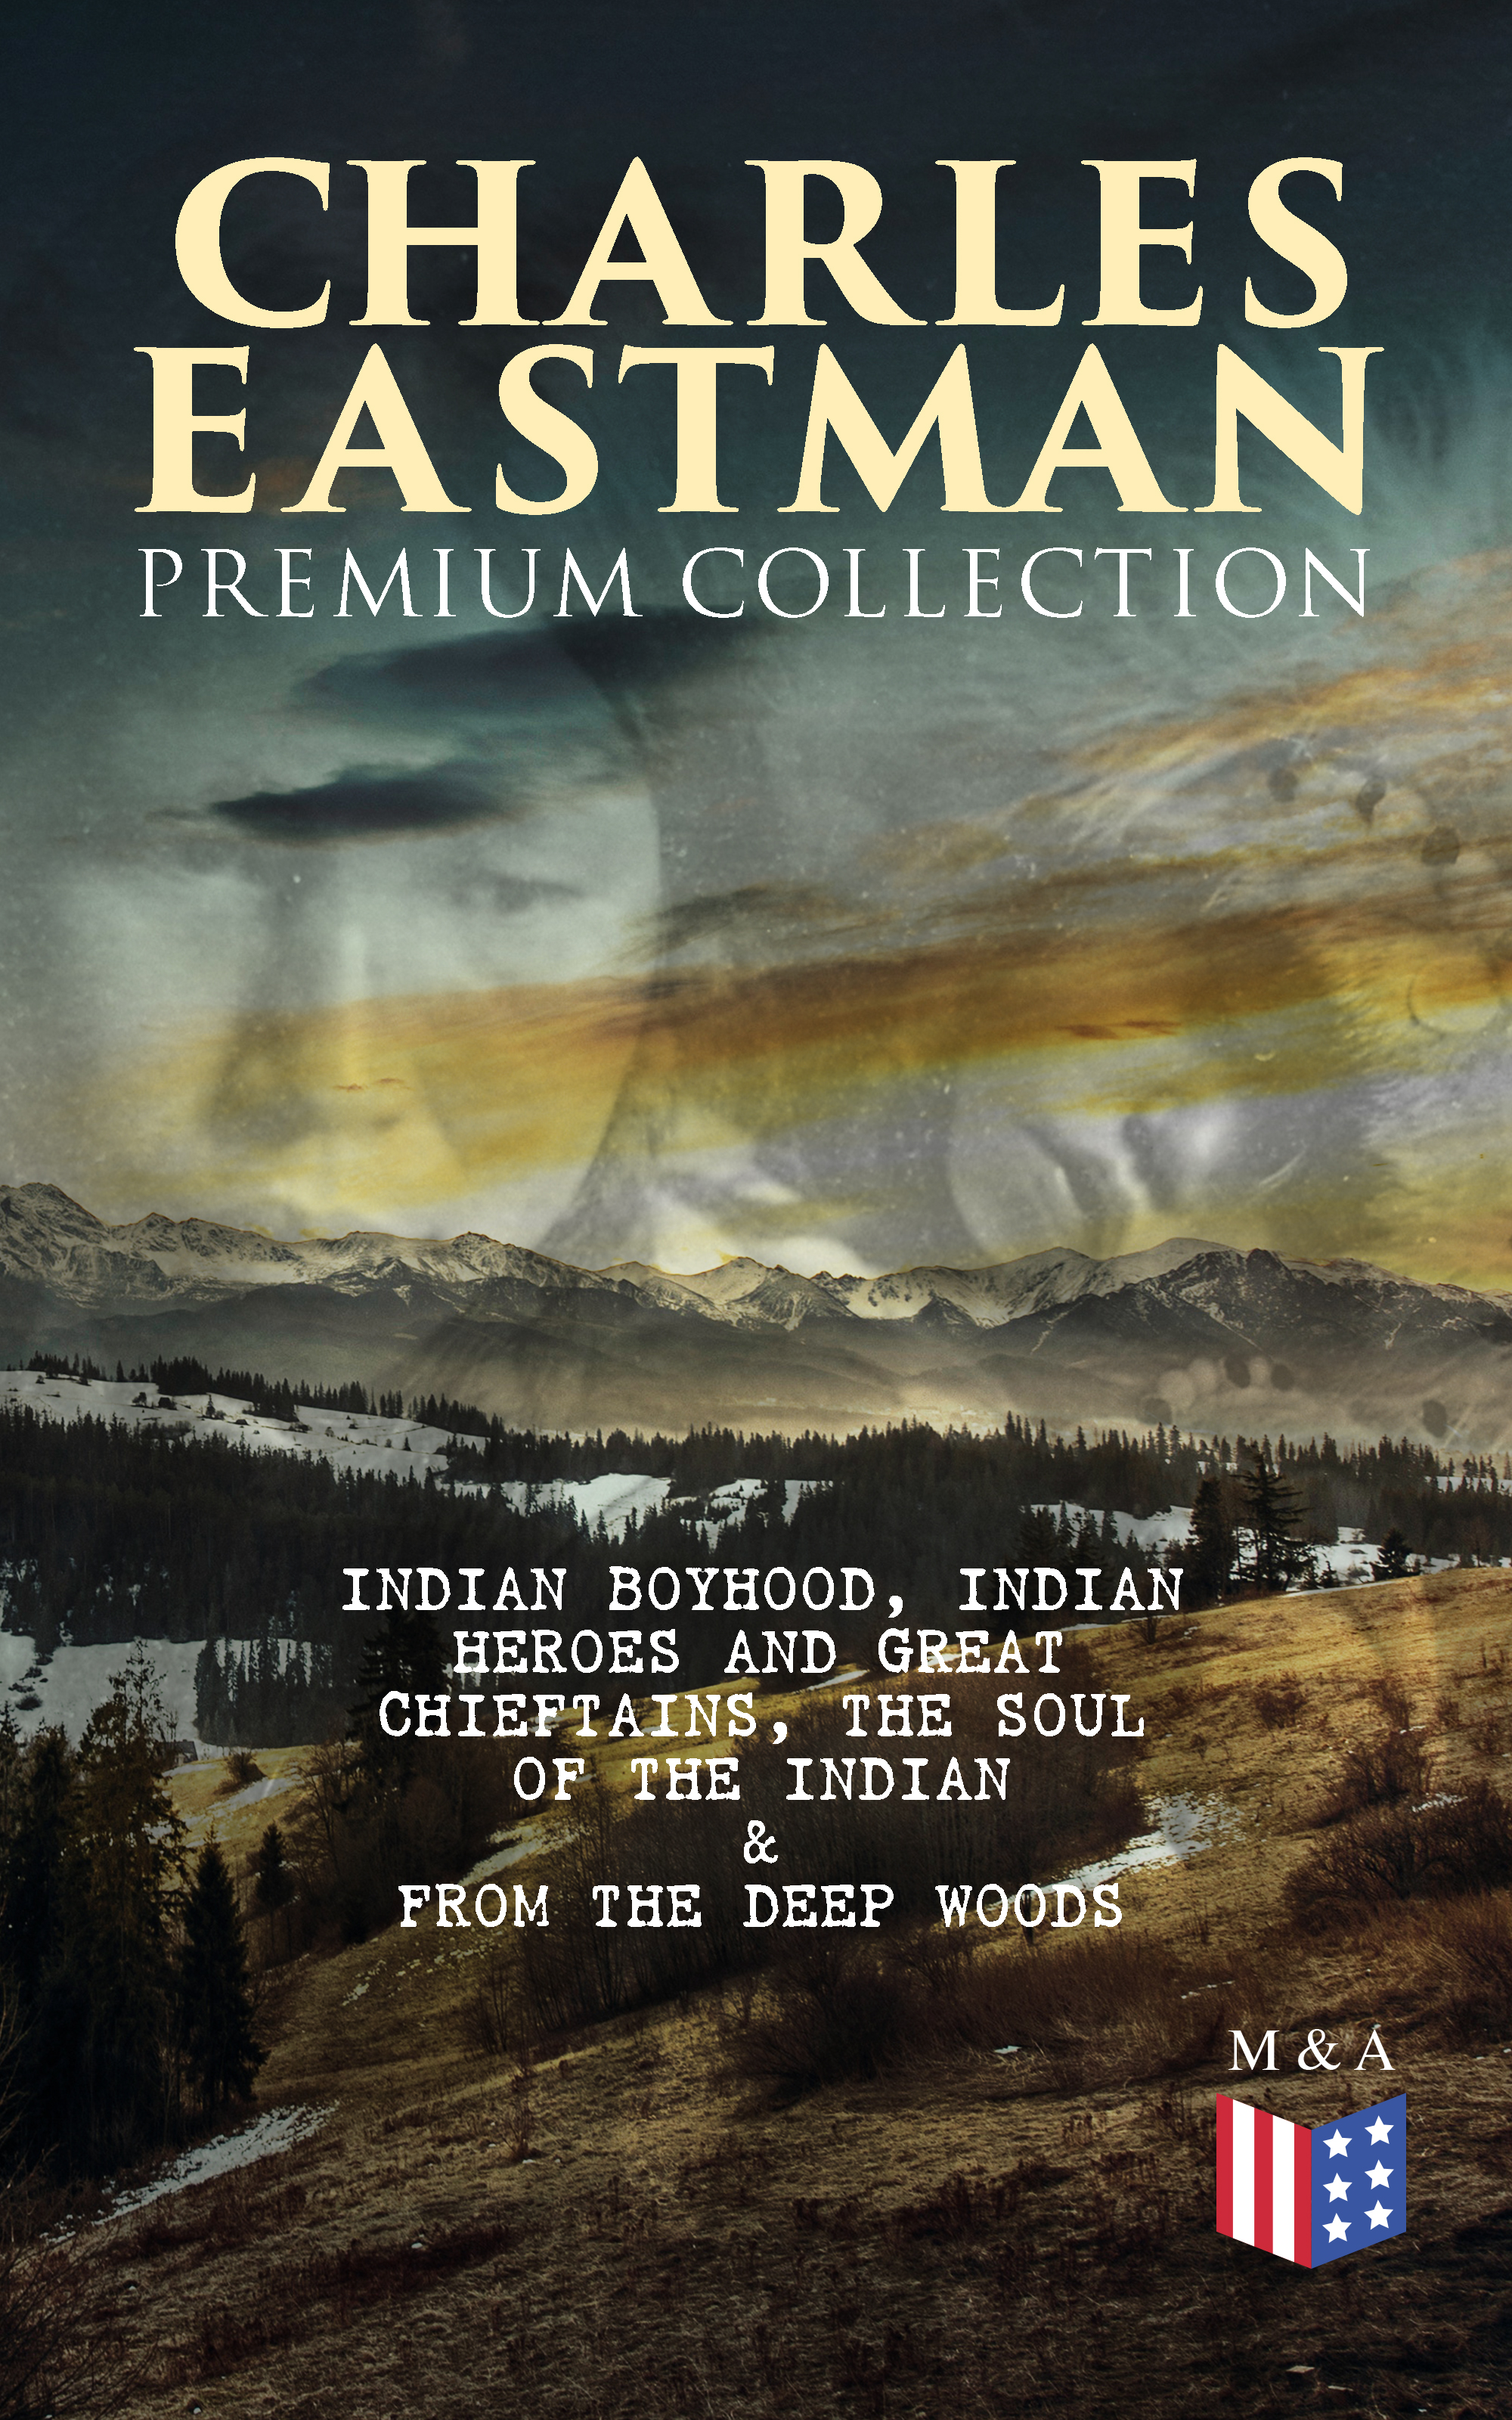 Charles A. Eastman CHARLES EASTMAN Premium Collection: Indian Boyhood, Indian Heroes and Great Chieftains, The Soul of the Indian & From the Deep Woods to Civilization eva woods the thirty list